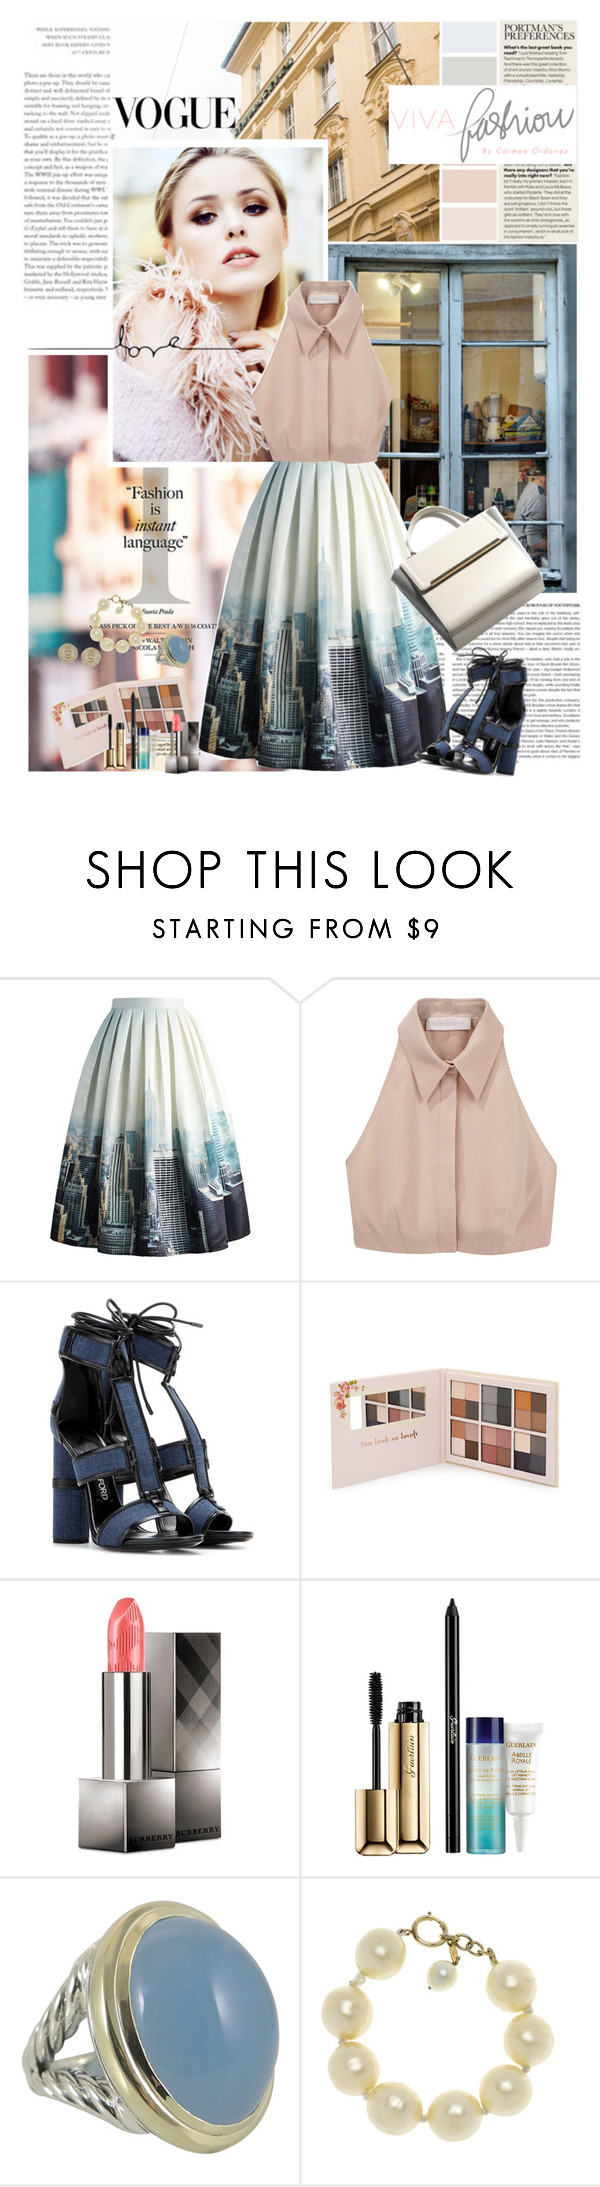 """""""Fashion Week"""" by ita-varela ❤ liked on Polyvore featuring Avery, Chicwish, Cacharel, Tom Ford, Forever 21, Burberry, Guerlain, David Yurman, Chanel and Hermès"""